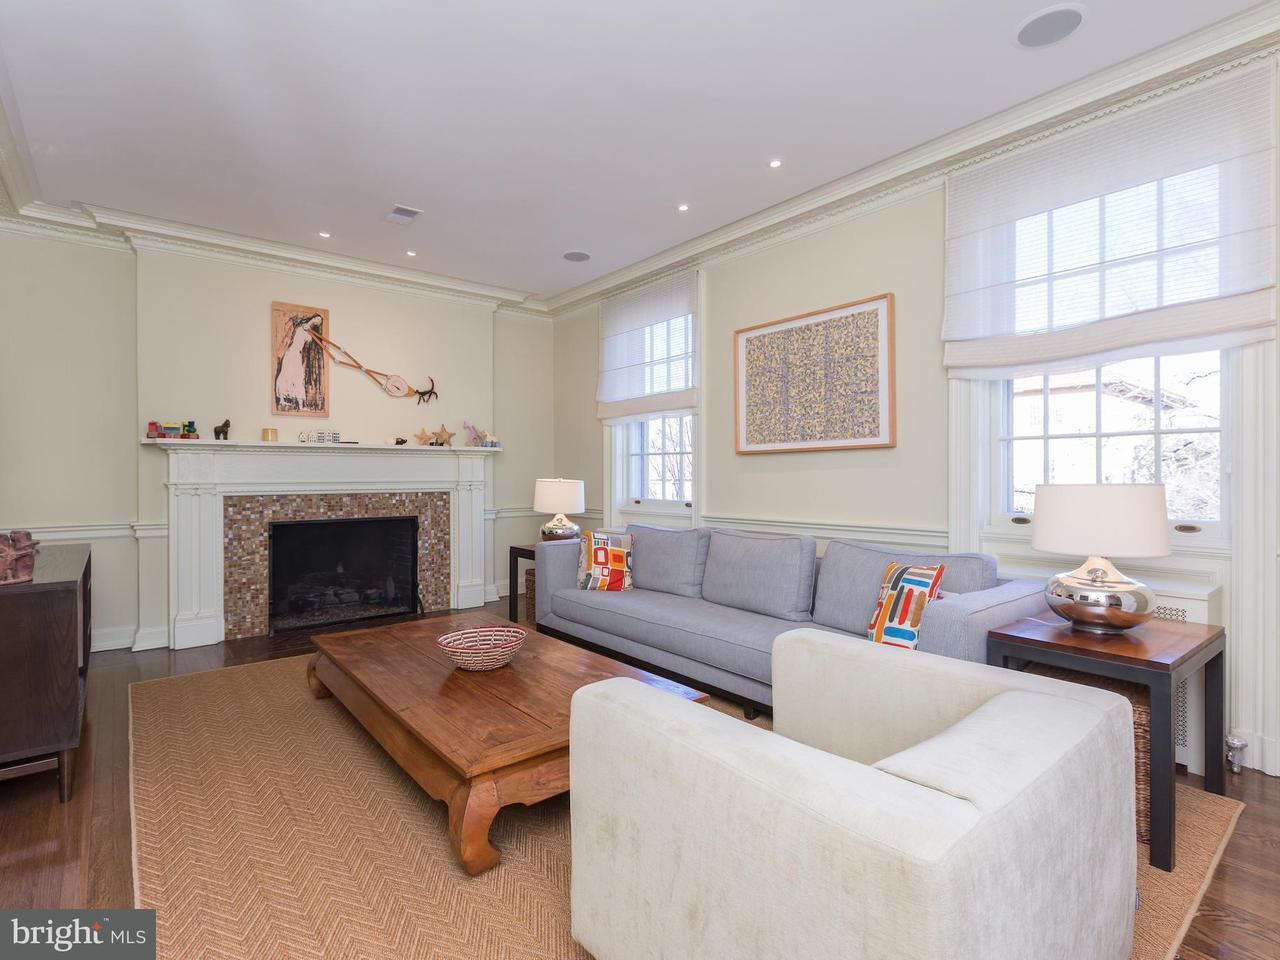 Additional photo for property listing at 2308 Wyoming Ave NW  Washington, District Of Columbia 20008 United States